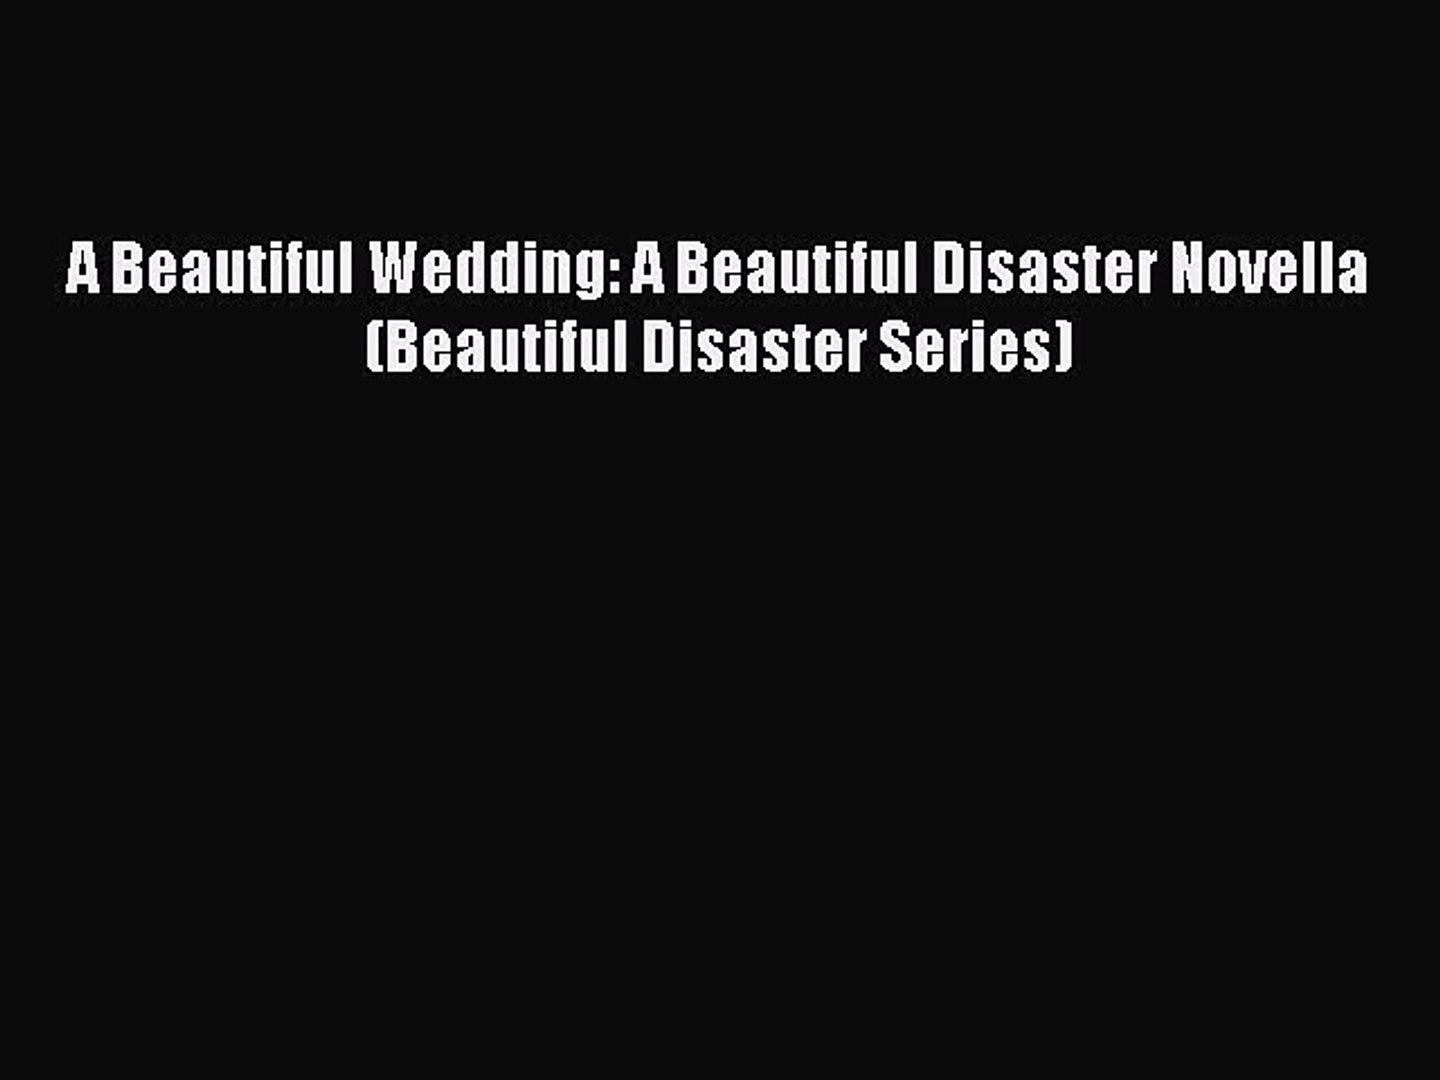 [Download] A Beautiful Wedding: A Beautiful Disaster Novella (Beautiful Disaster Series) Free